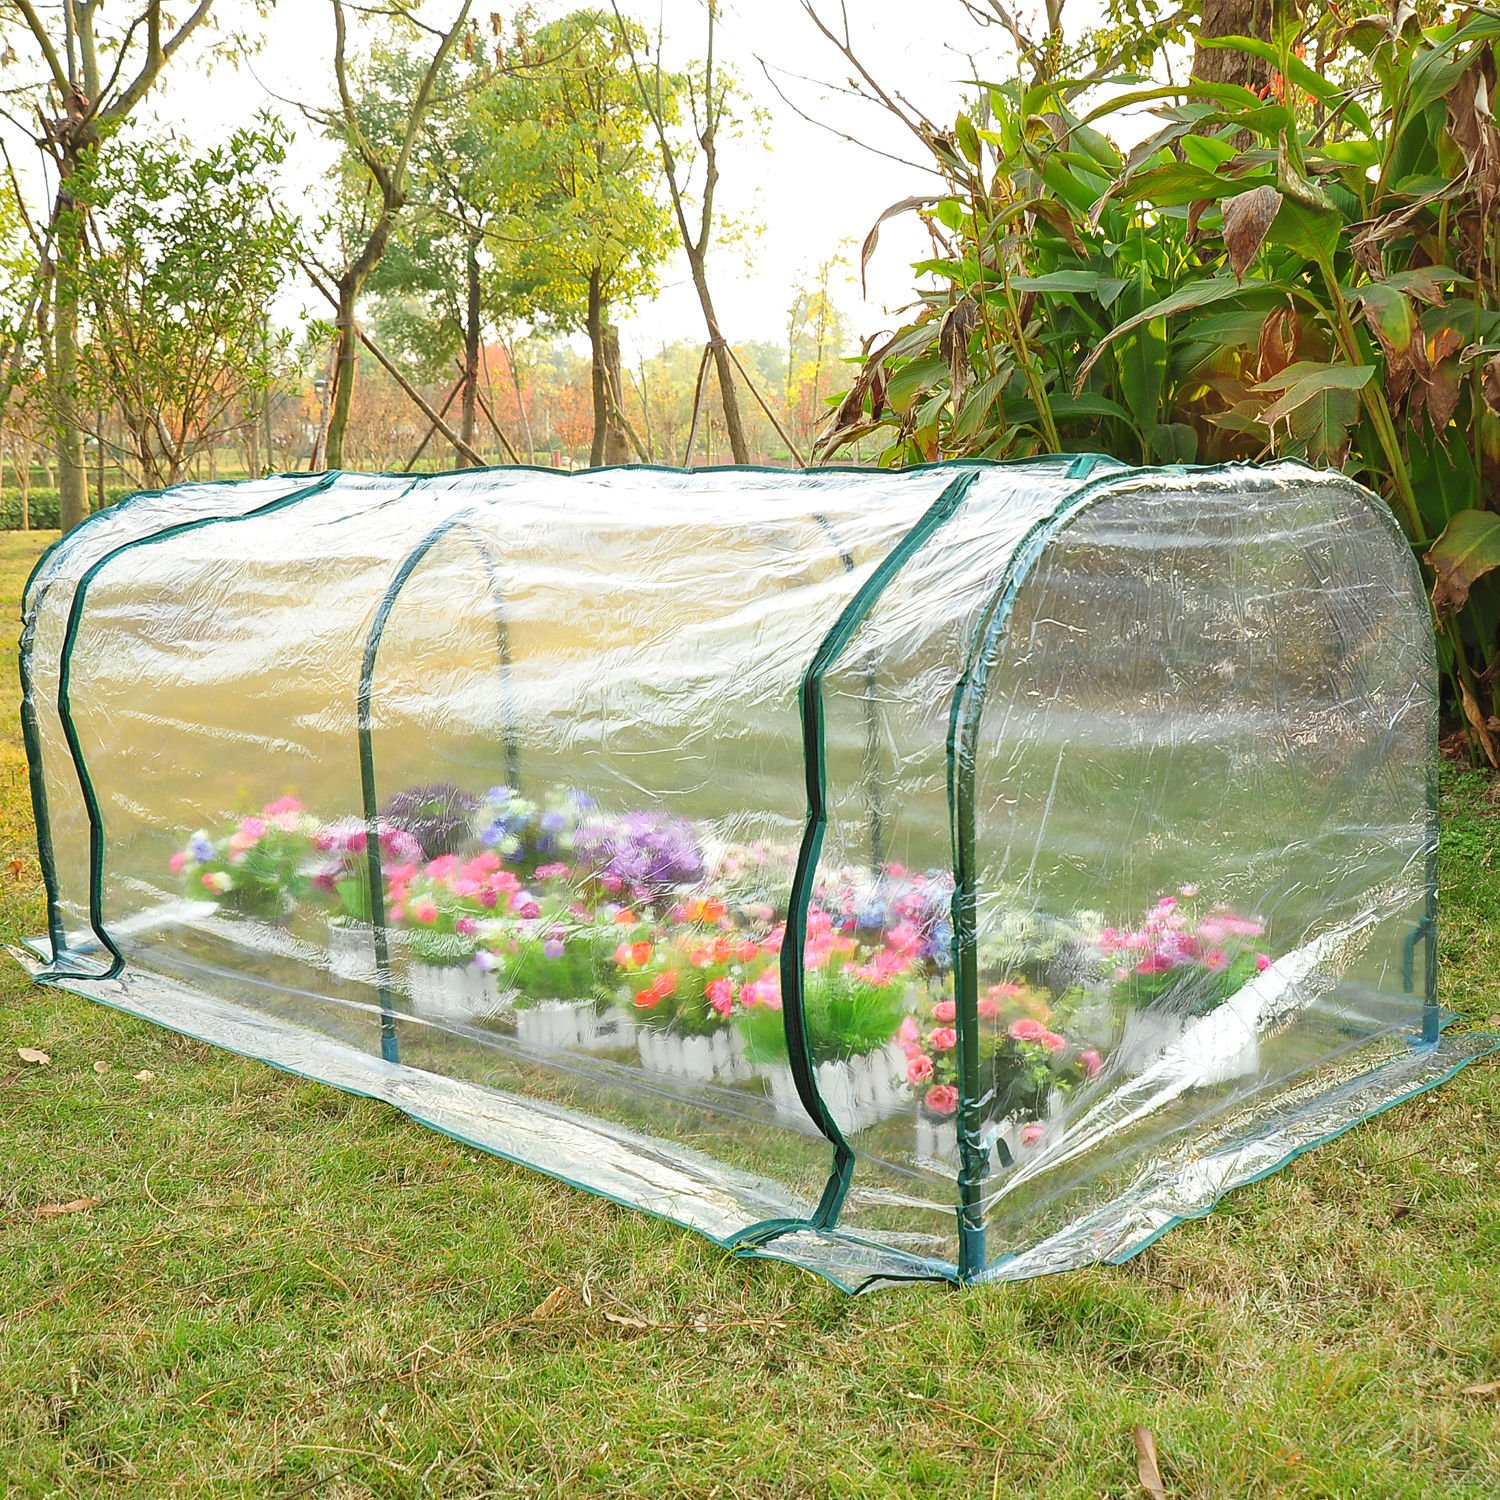 Greenhouse Mini Portable Garden Plant Tier Green Planter Flower 7'x3'x3' House Tunnel